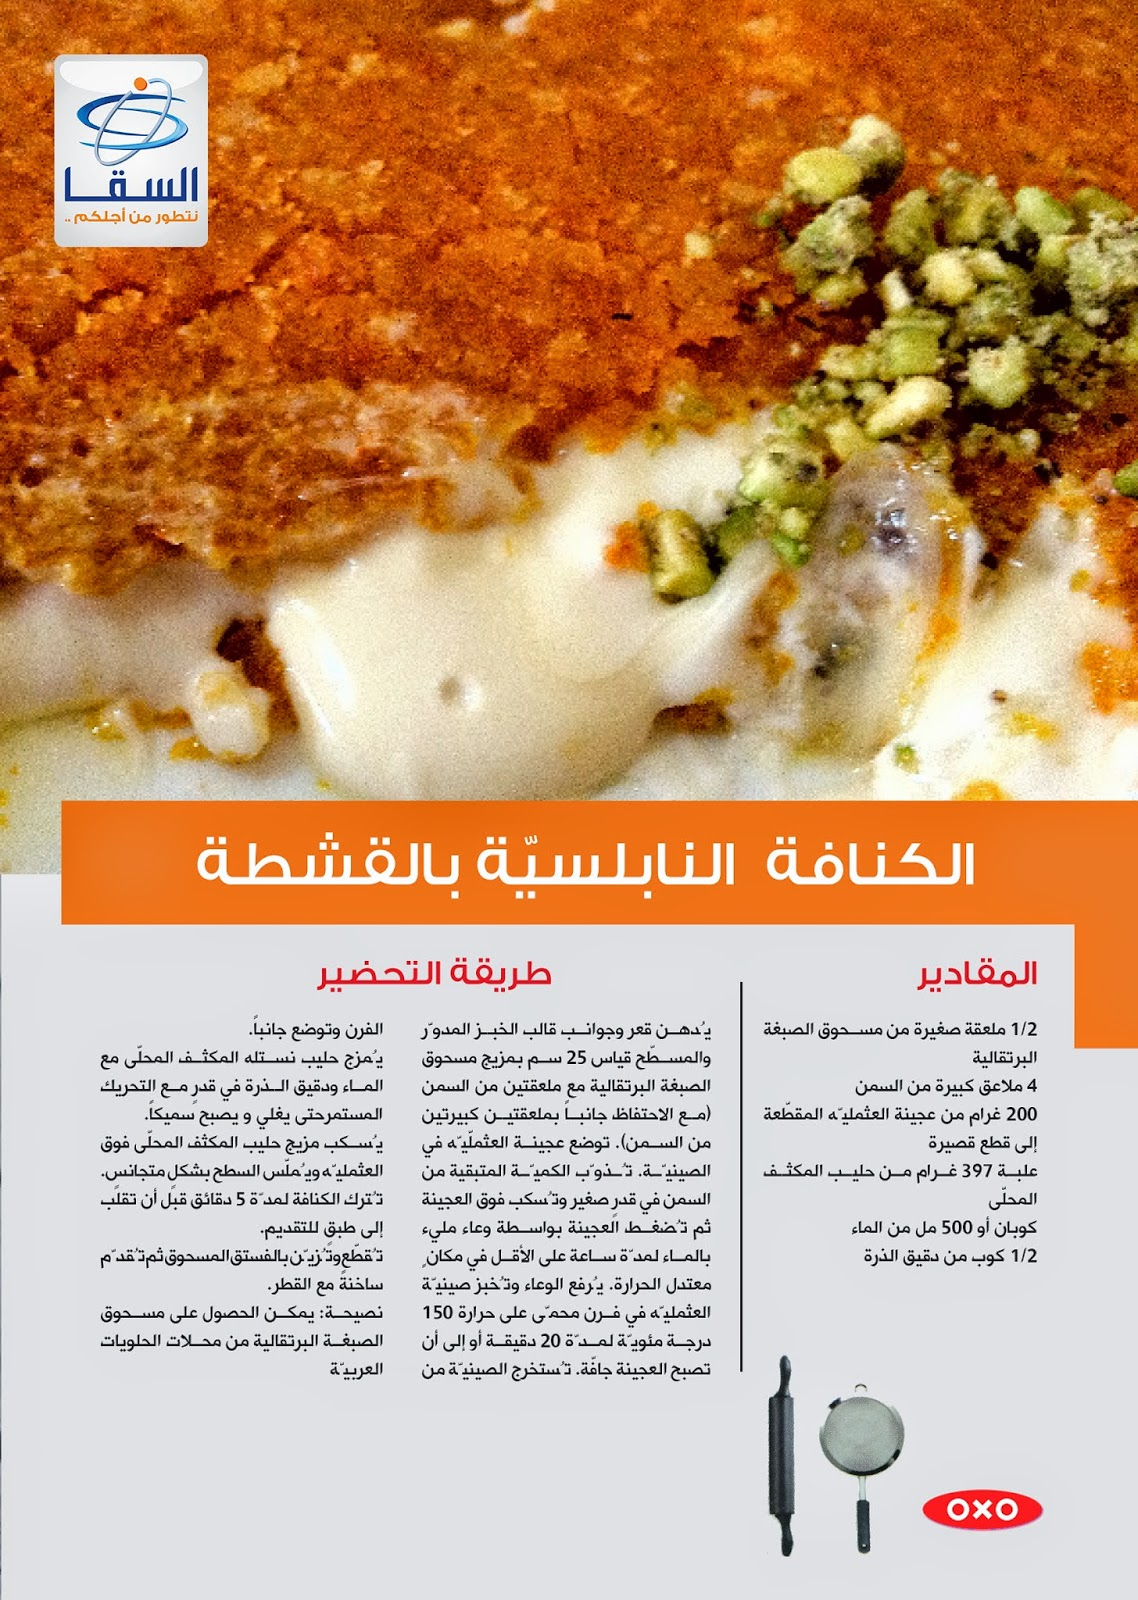 Peoniesflower Tumblr Com Post 112068888193 Amp Cookout Food Sweet Cooking Egyptian Food